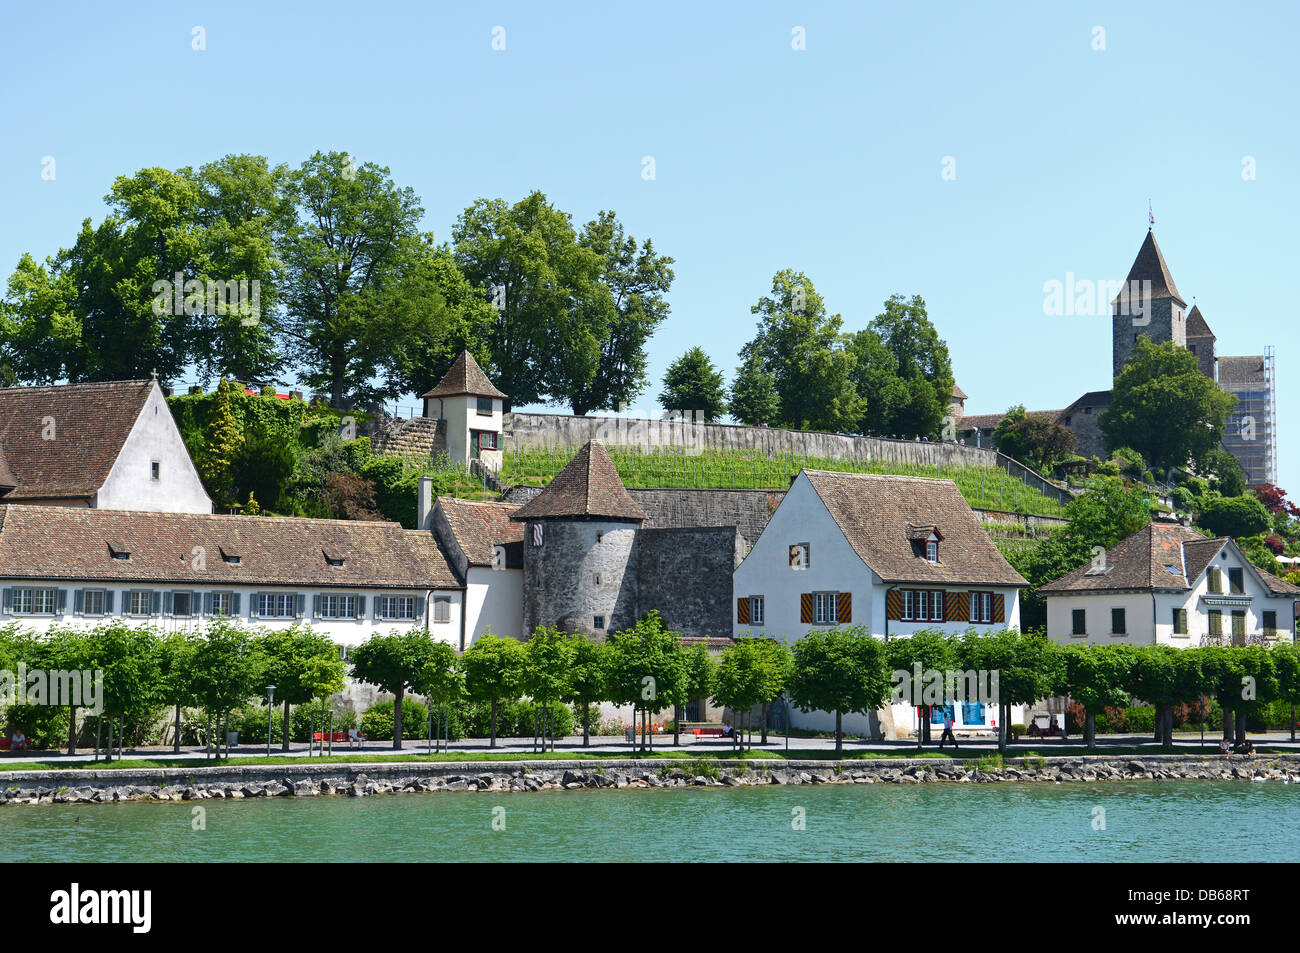 Rapperswil is situated at the Zurichsee in Switzerland - Stock Image